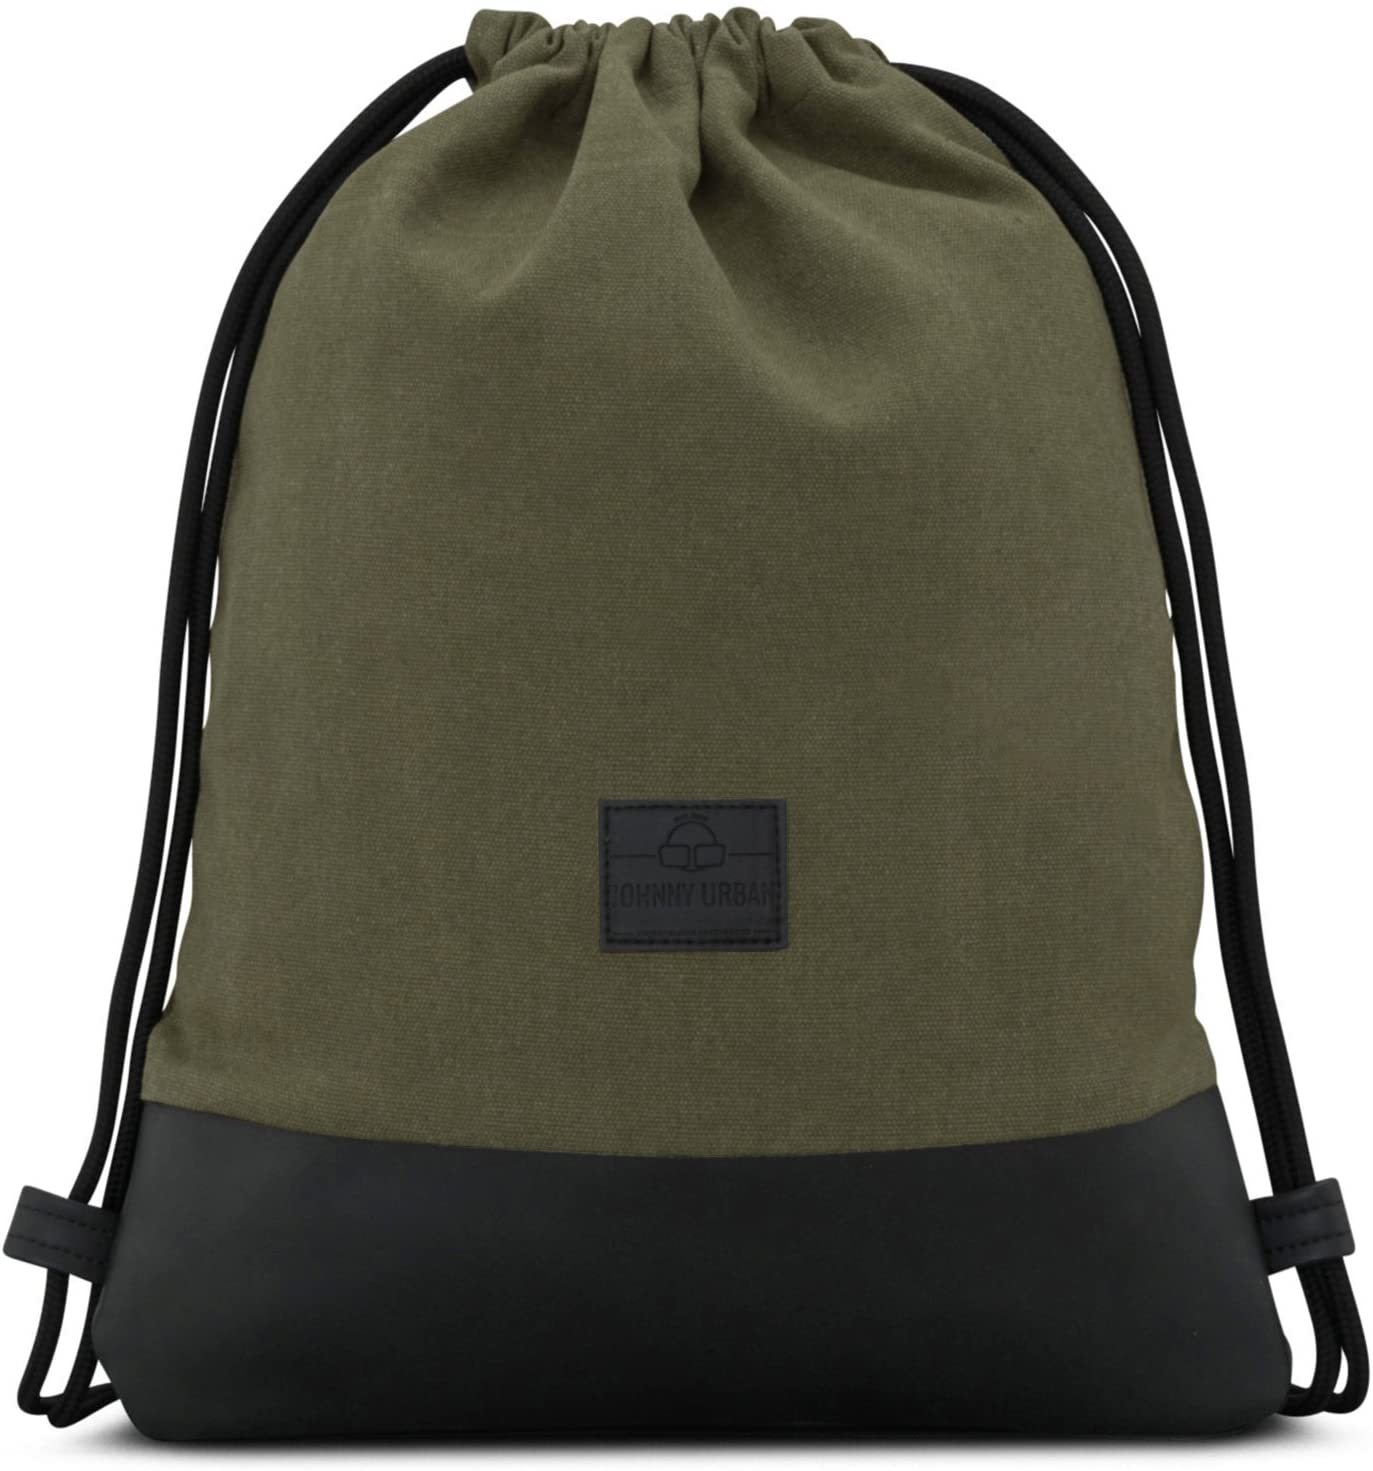 Drawstring Bag Cotton Green JOHNNY URBAN Canvas Gymsack Sackpack Sack Men & Women